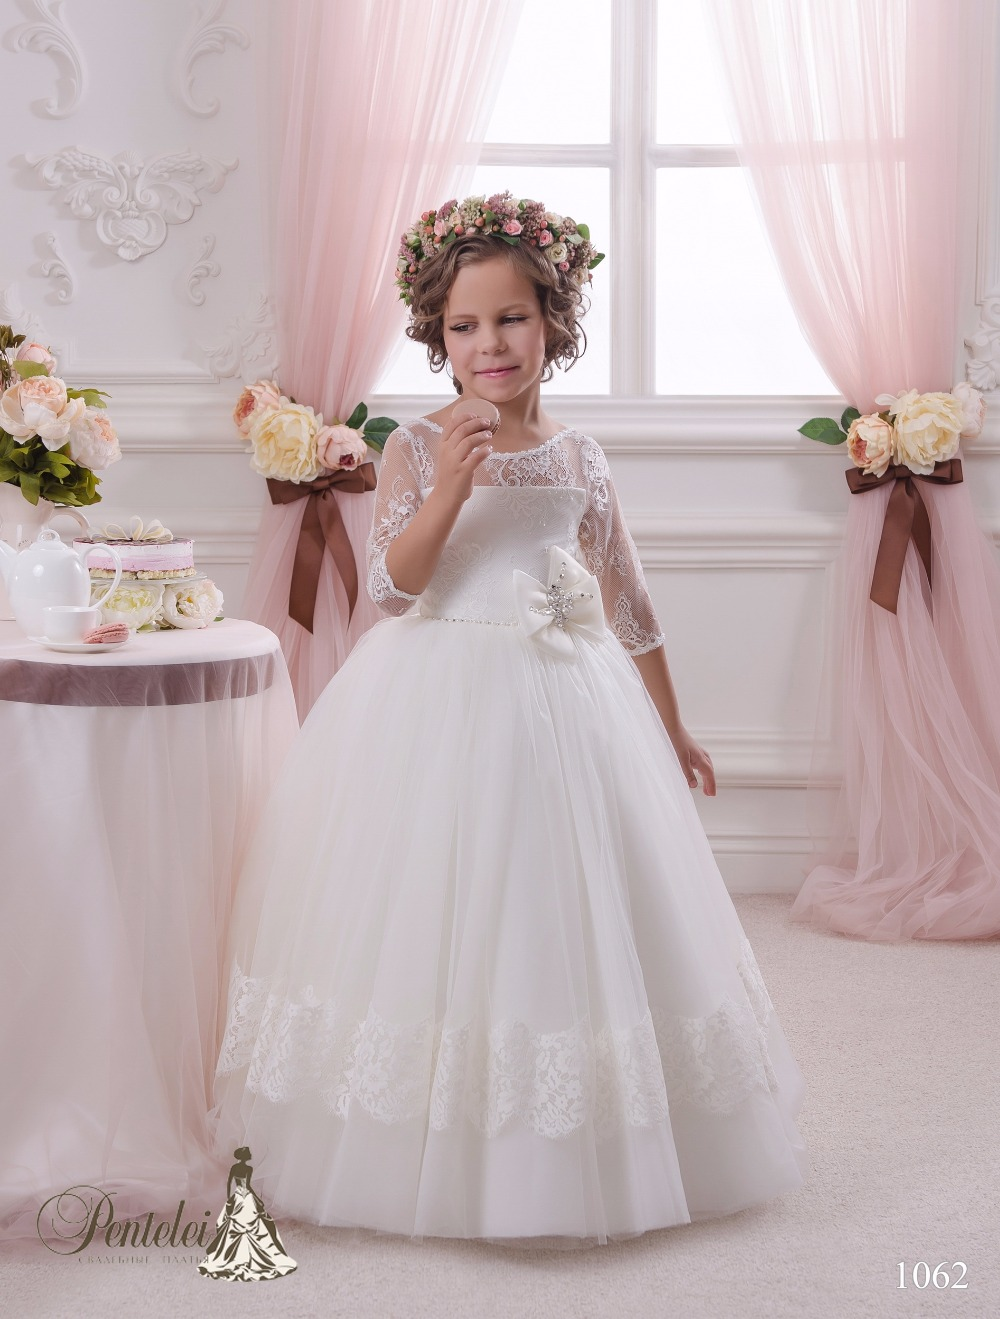 Holy First Communion Dresses Floor Length Tulle Ball Gown Infant Girl Pageant Baby Christening Dress Stunning Dresses 0-12 Year автомобиль радиоуправляемый rastar hummer h2 sut желтый